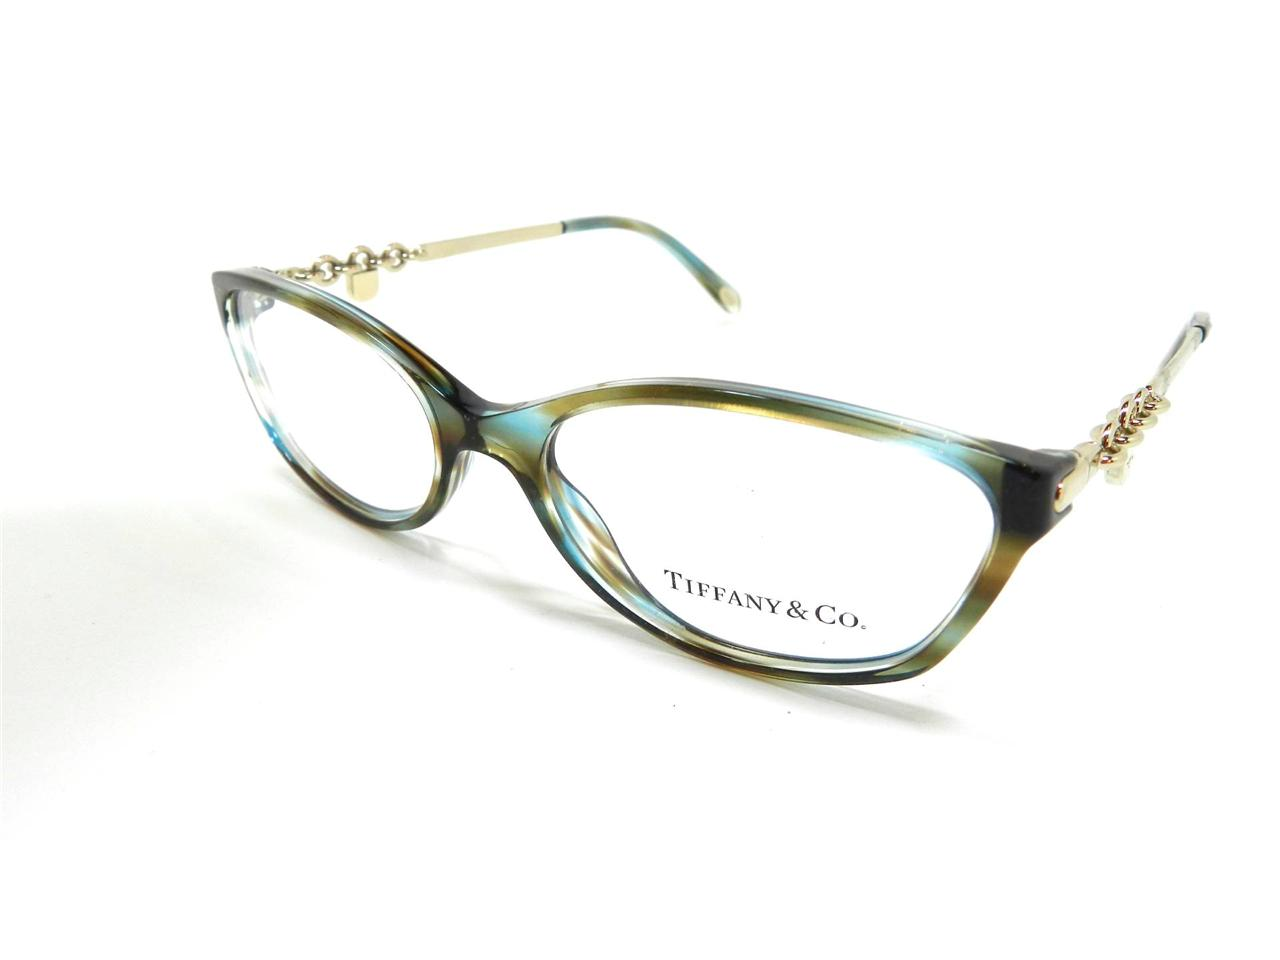 Glasses Frames Tiffany : Tiffany Amp Co Eyeglasses 2063 8124 Optical Frame New ...